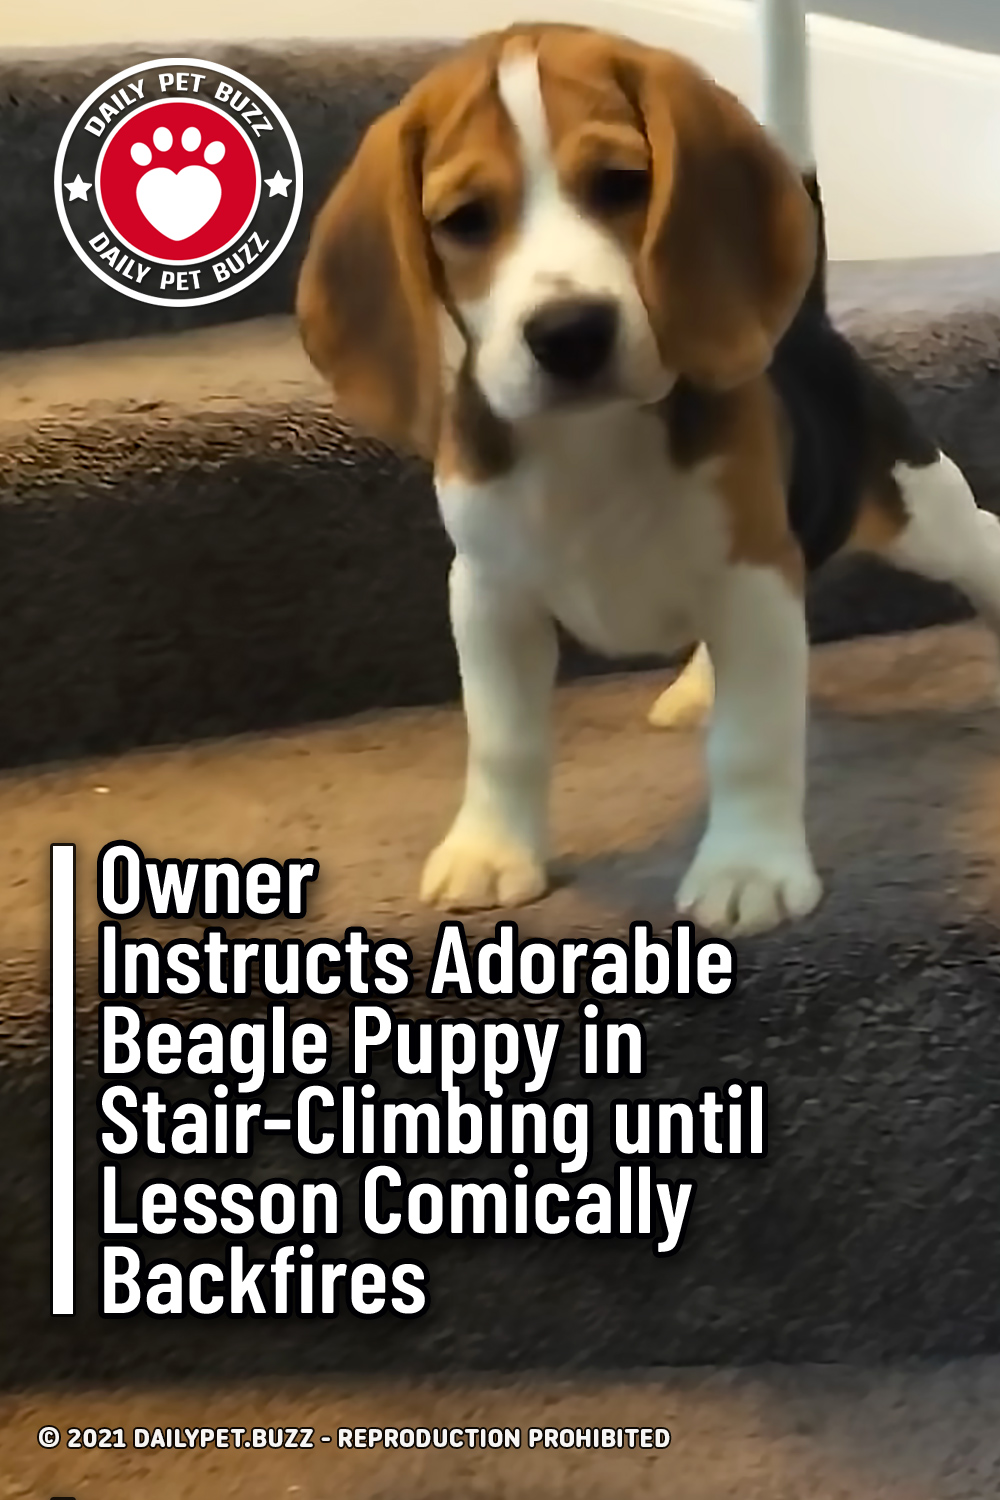 Owner Instructs Adorable Beagle Puppy in Stair-Climbing until Lesson Comically Backfires